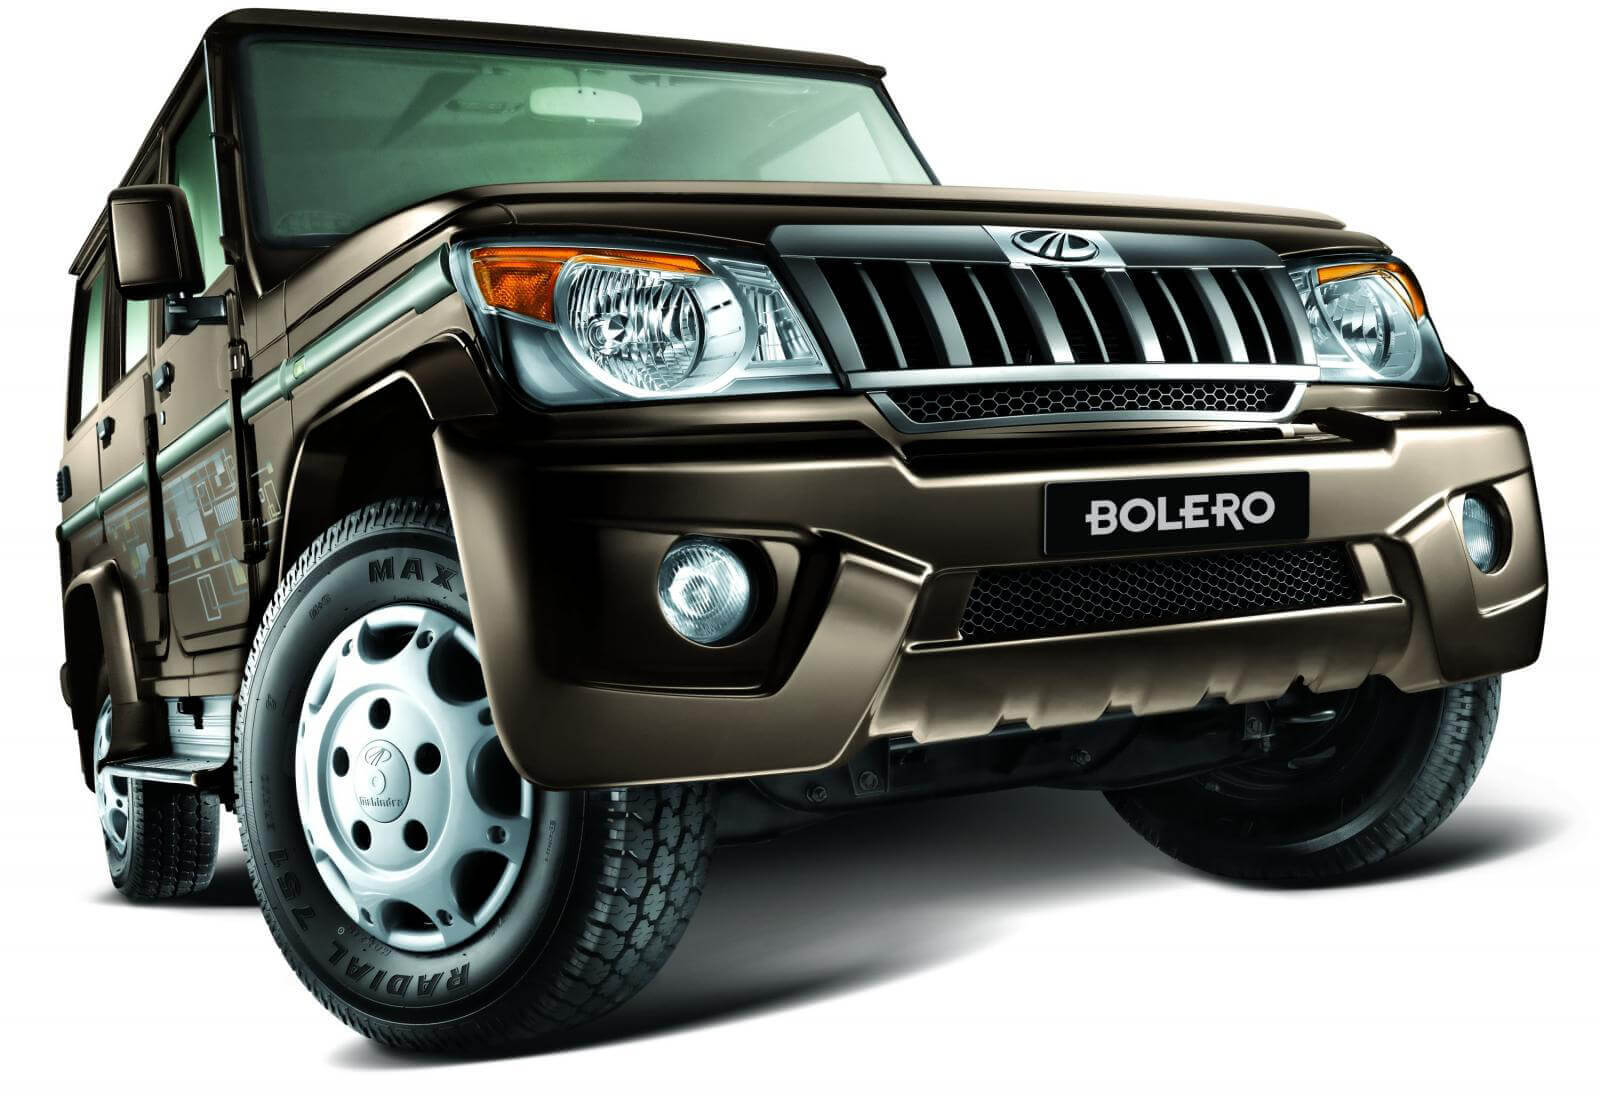 Mahindra Bolero wallpapers, free download